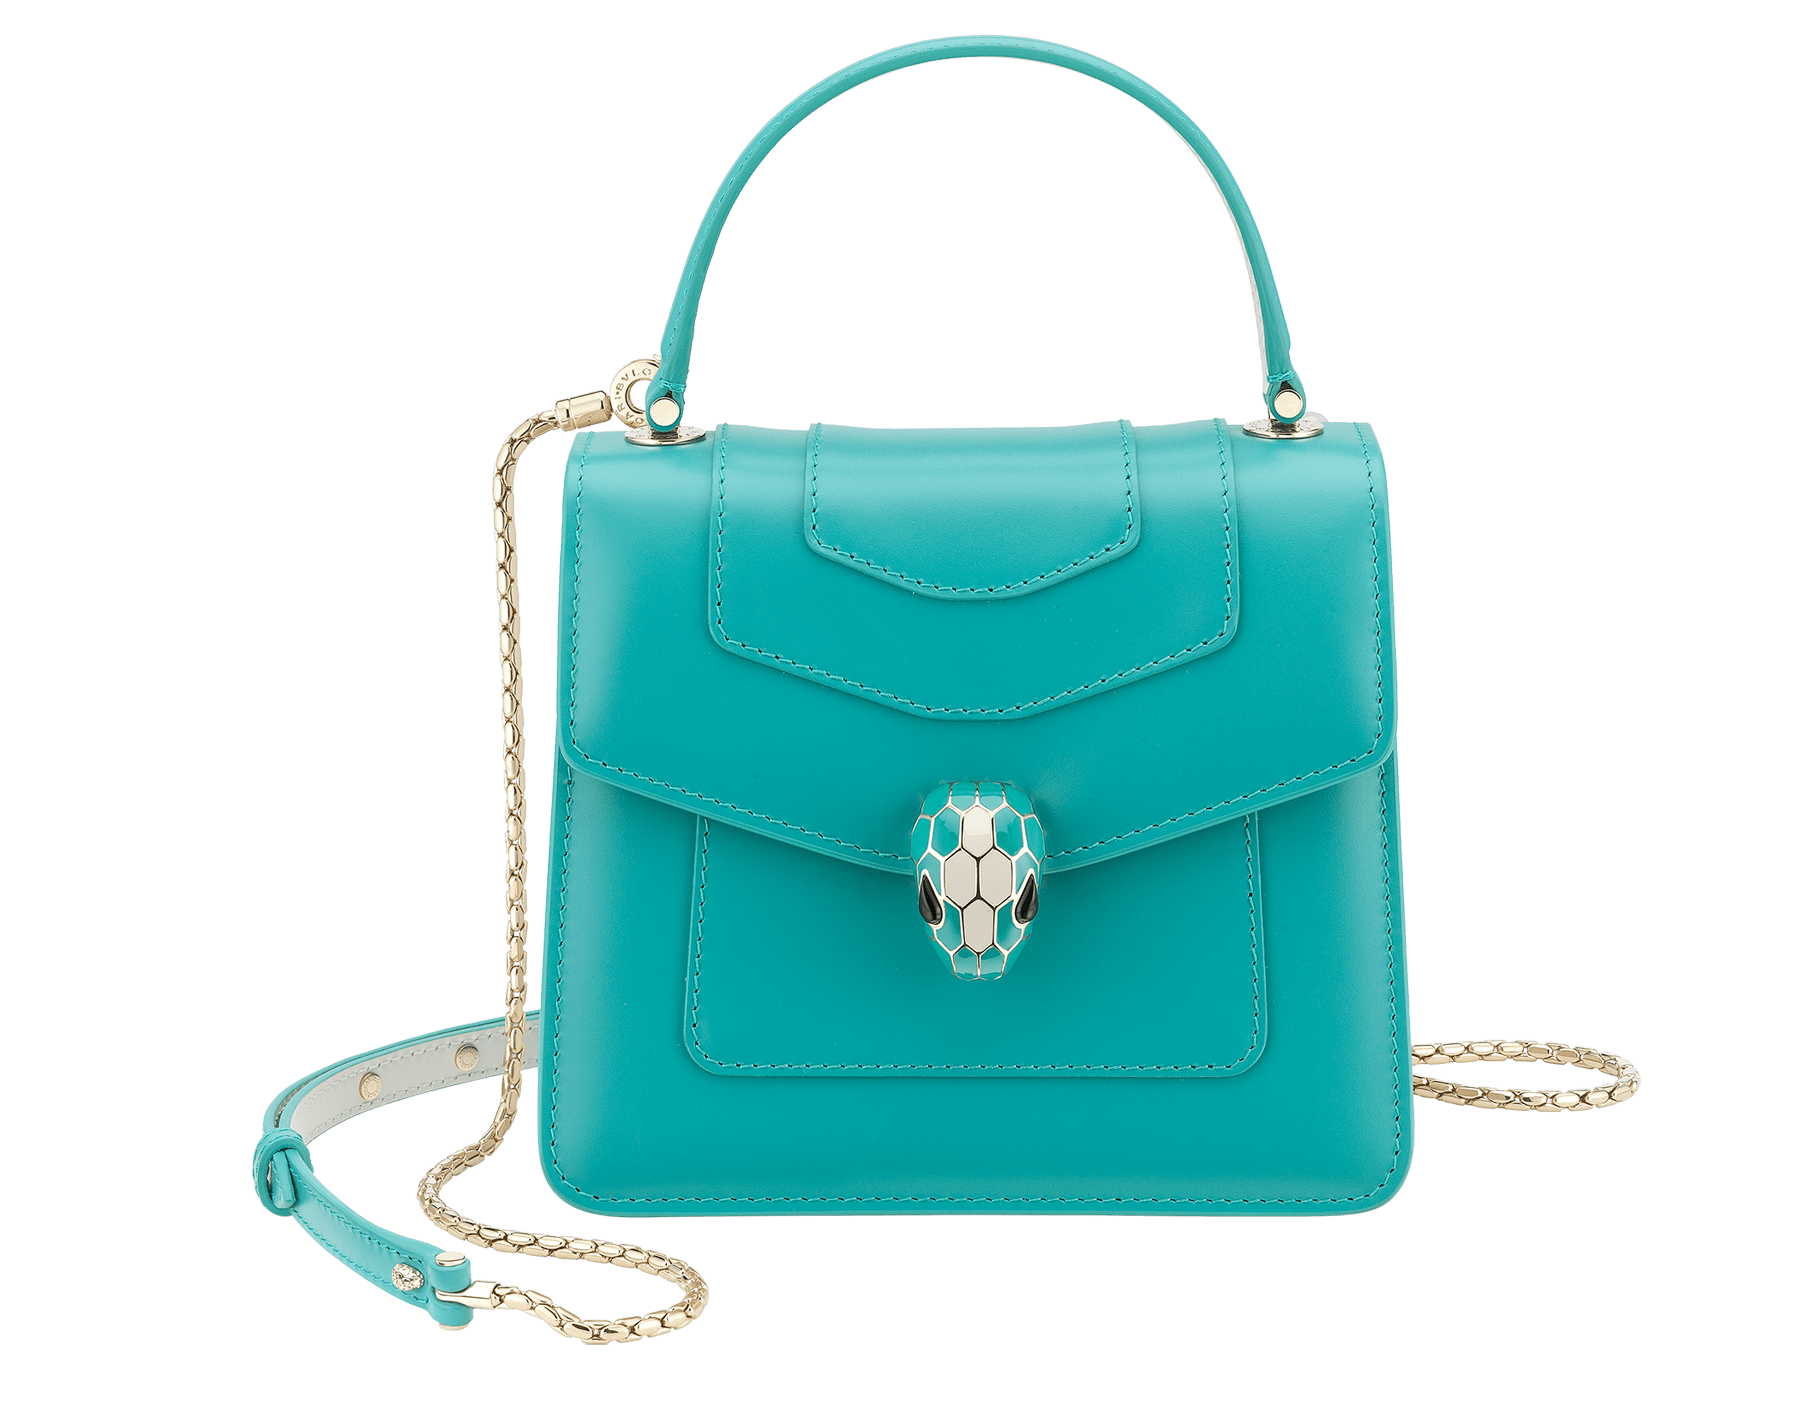 """Serpenti Forever "" crossbody bag in arctic jade calf leather body and glacier turquoise and white agate calf leather sides. Iconic snakehead closure in light gold plated brass enriched with arctic jade and white agate enamel and black onyx eyes. 288772 image 1"